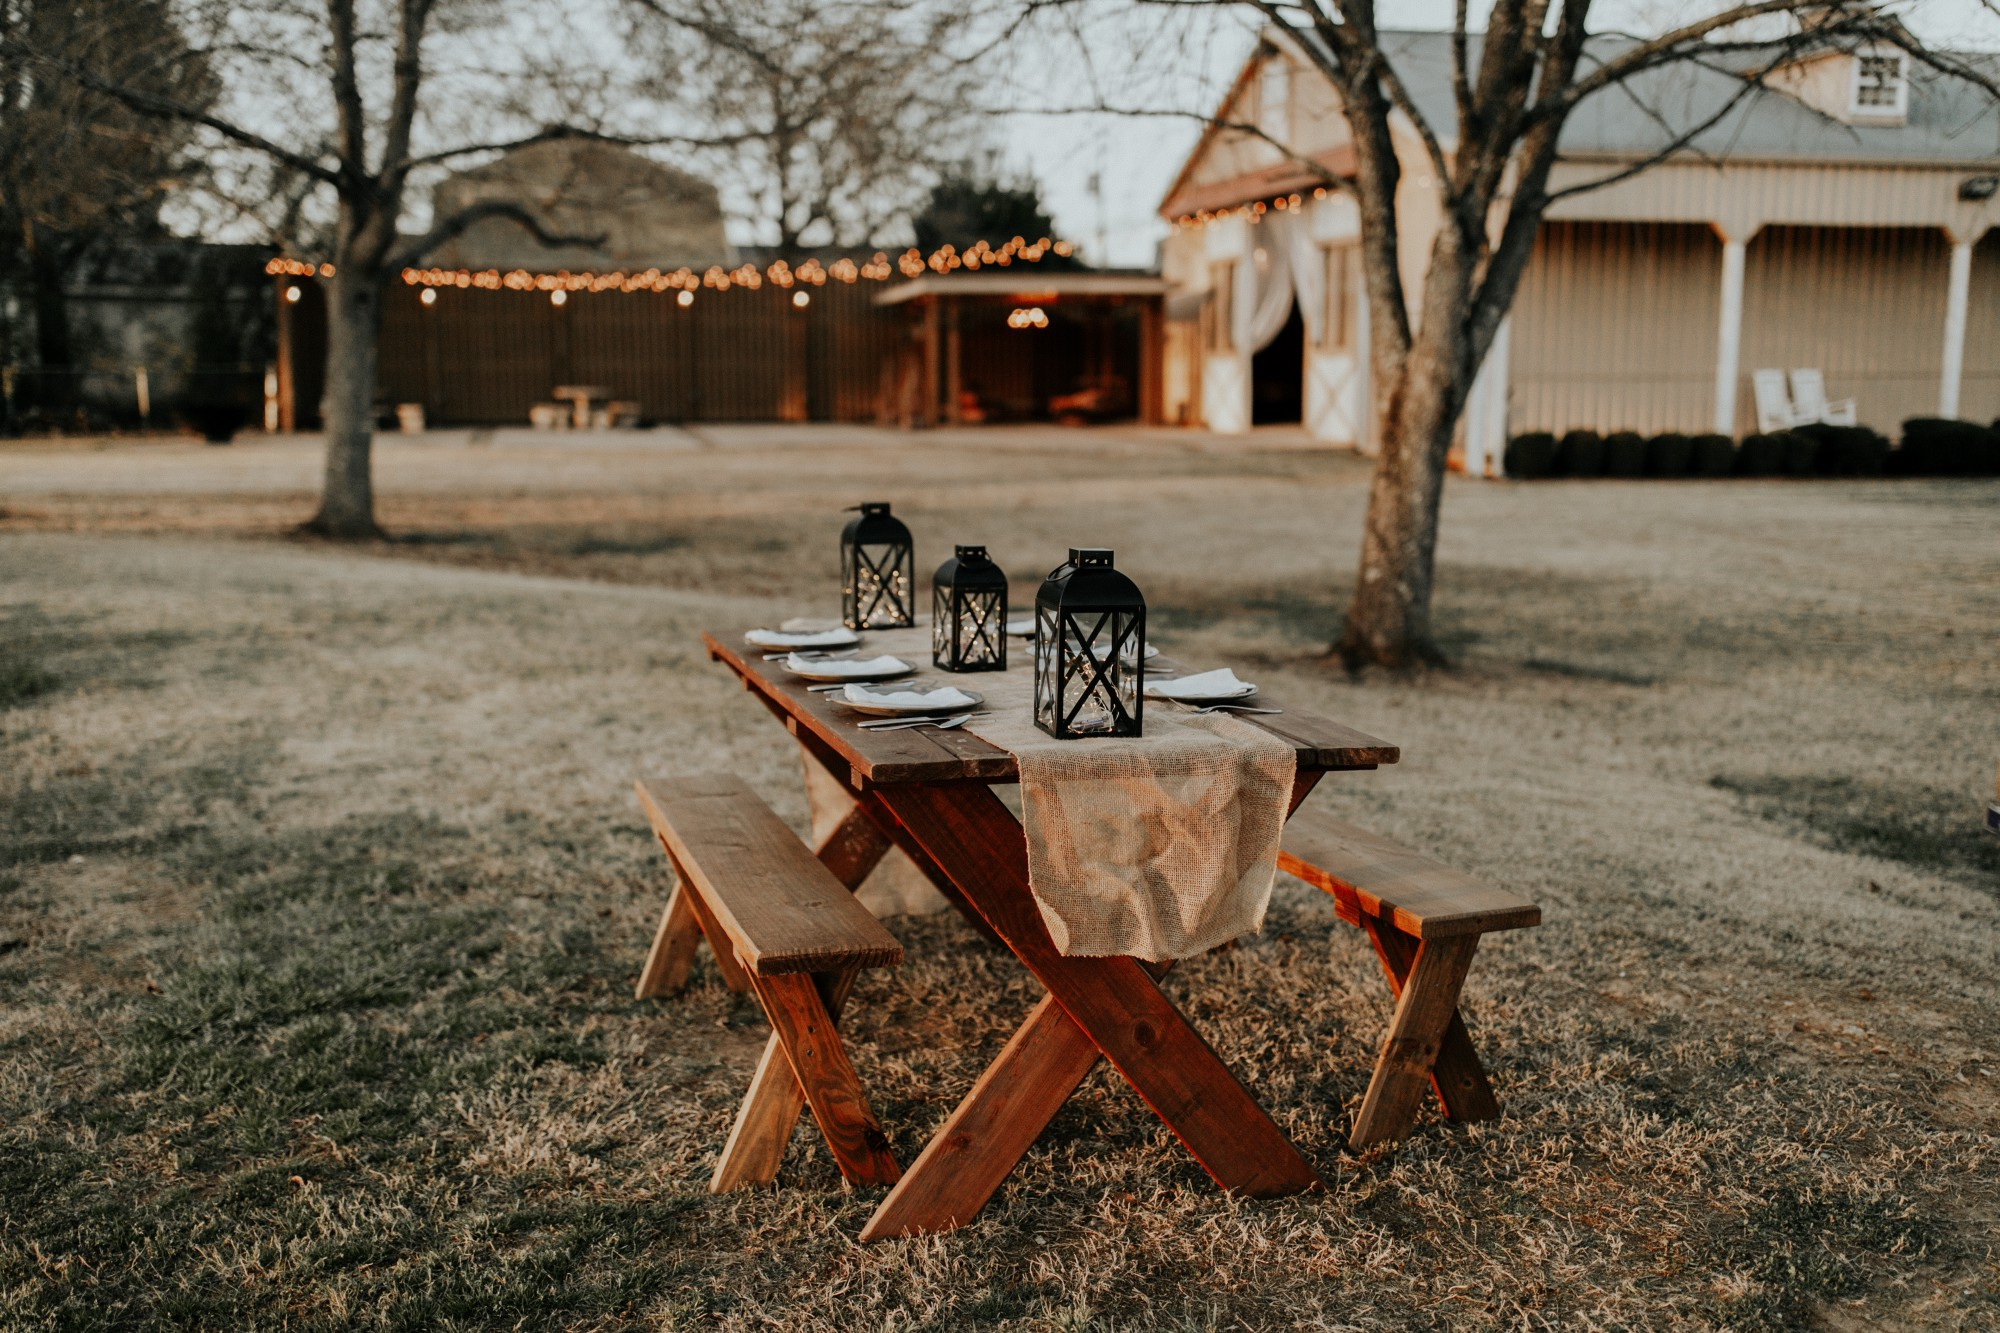 A picnic table dressed for a meal. Barren trees and a house decorated with lights are in the background.